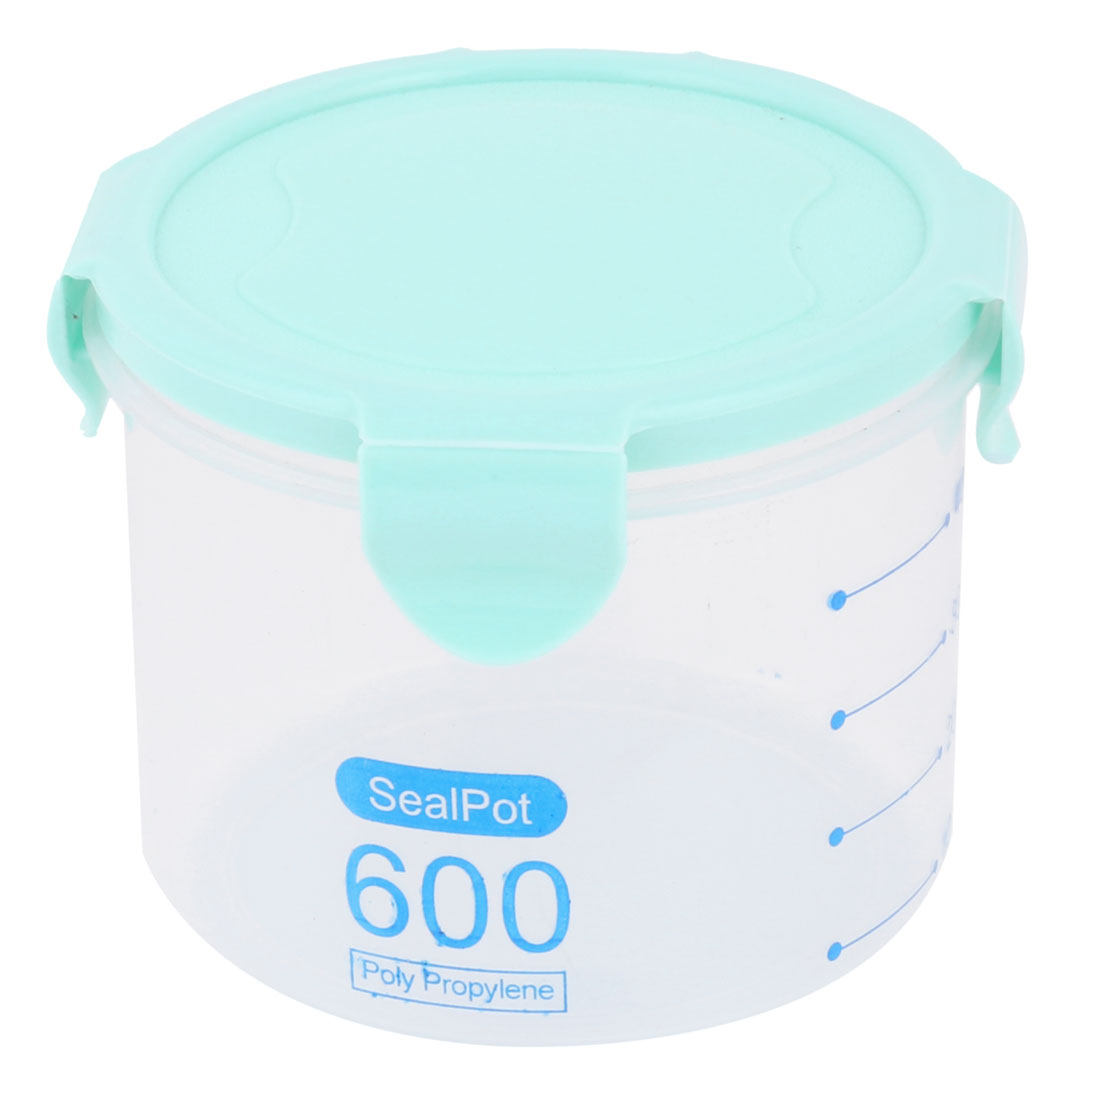 Home PP Cylinder Sealed Candy Fruit Food Storage Container Box Case Cyan 600ml - image 4 de 4